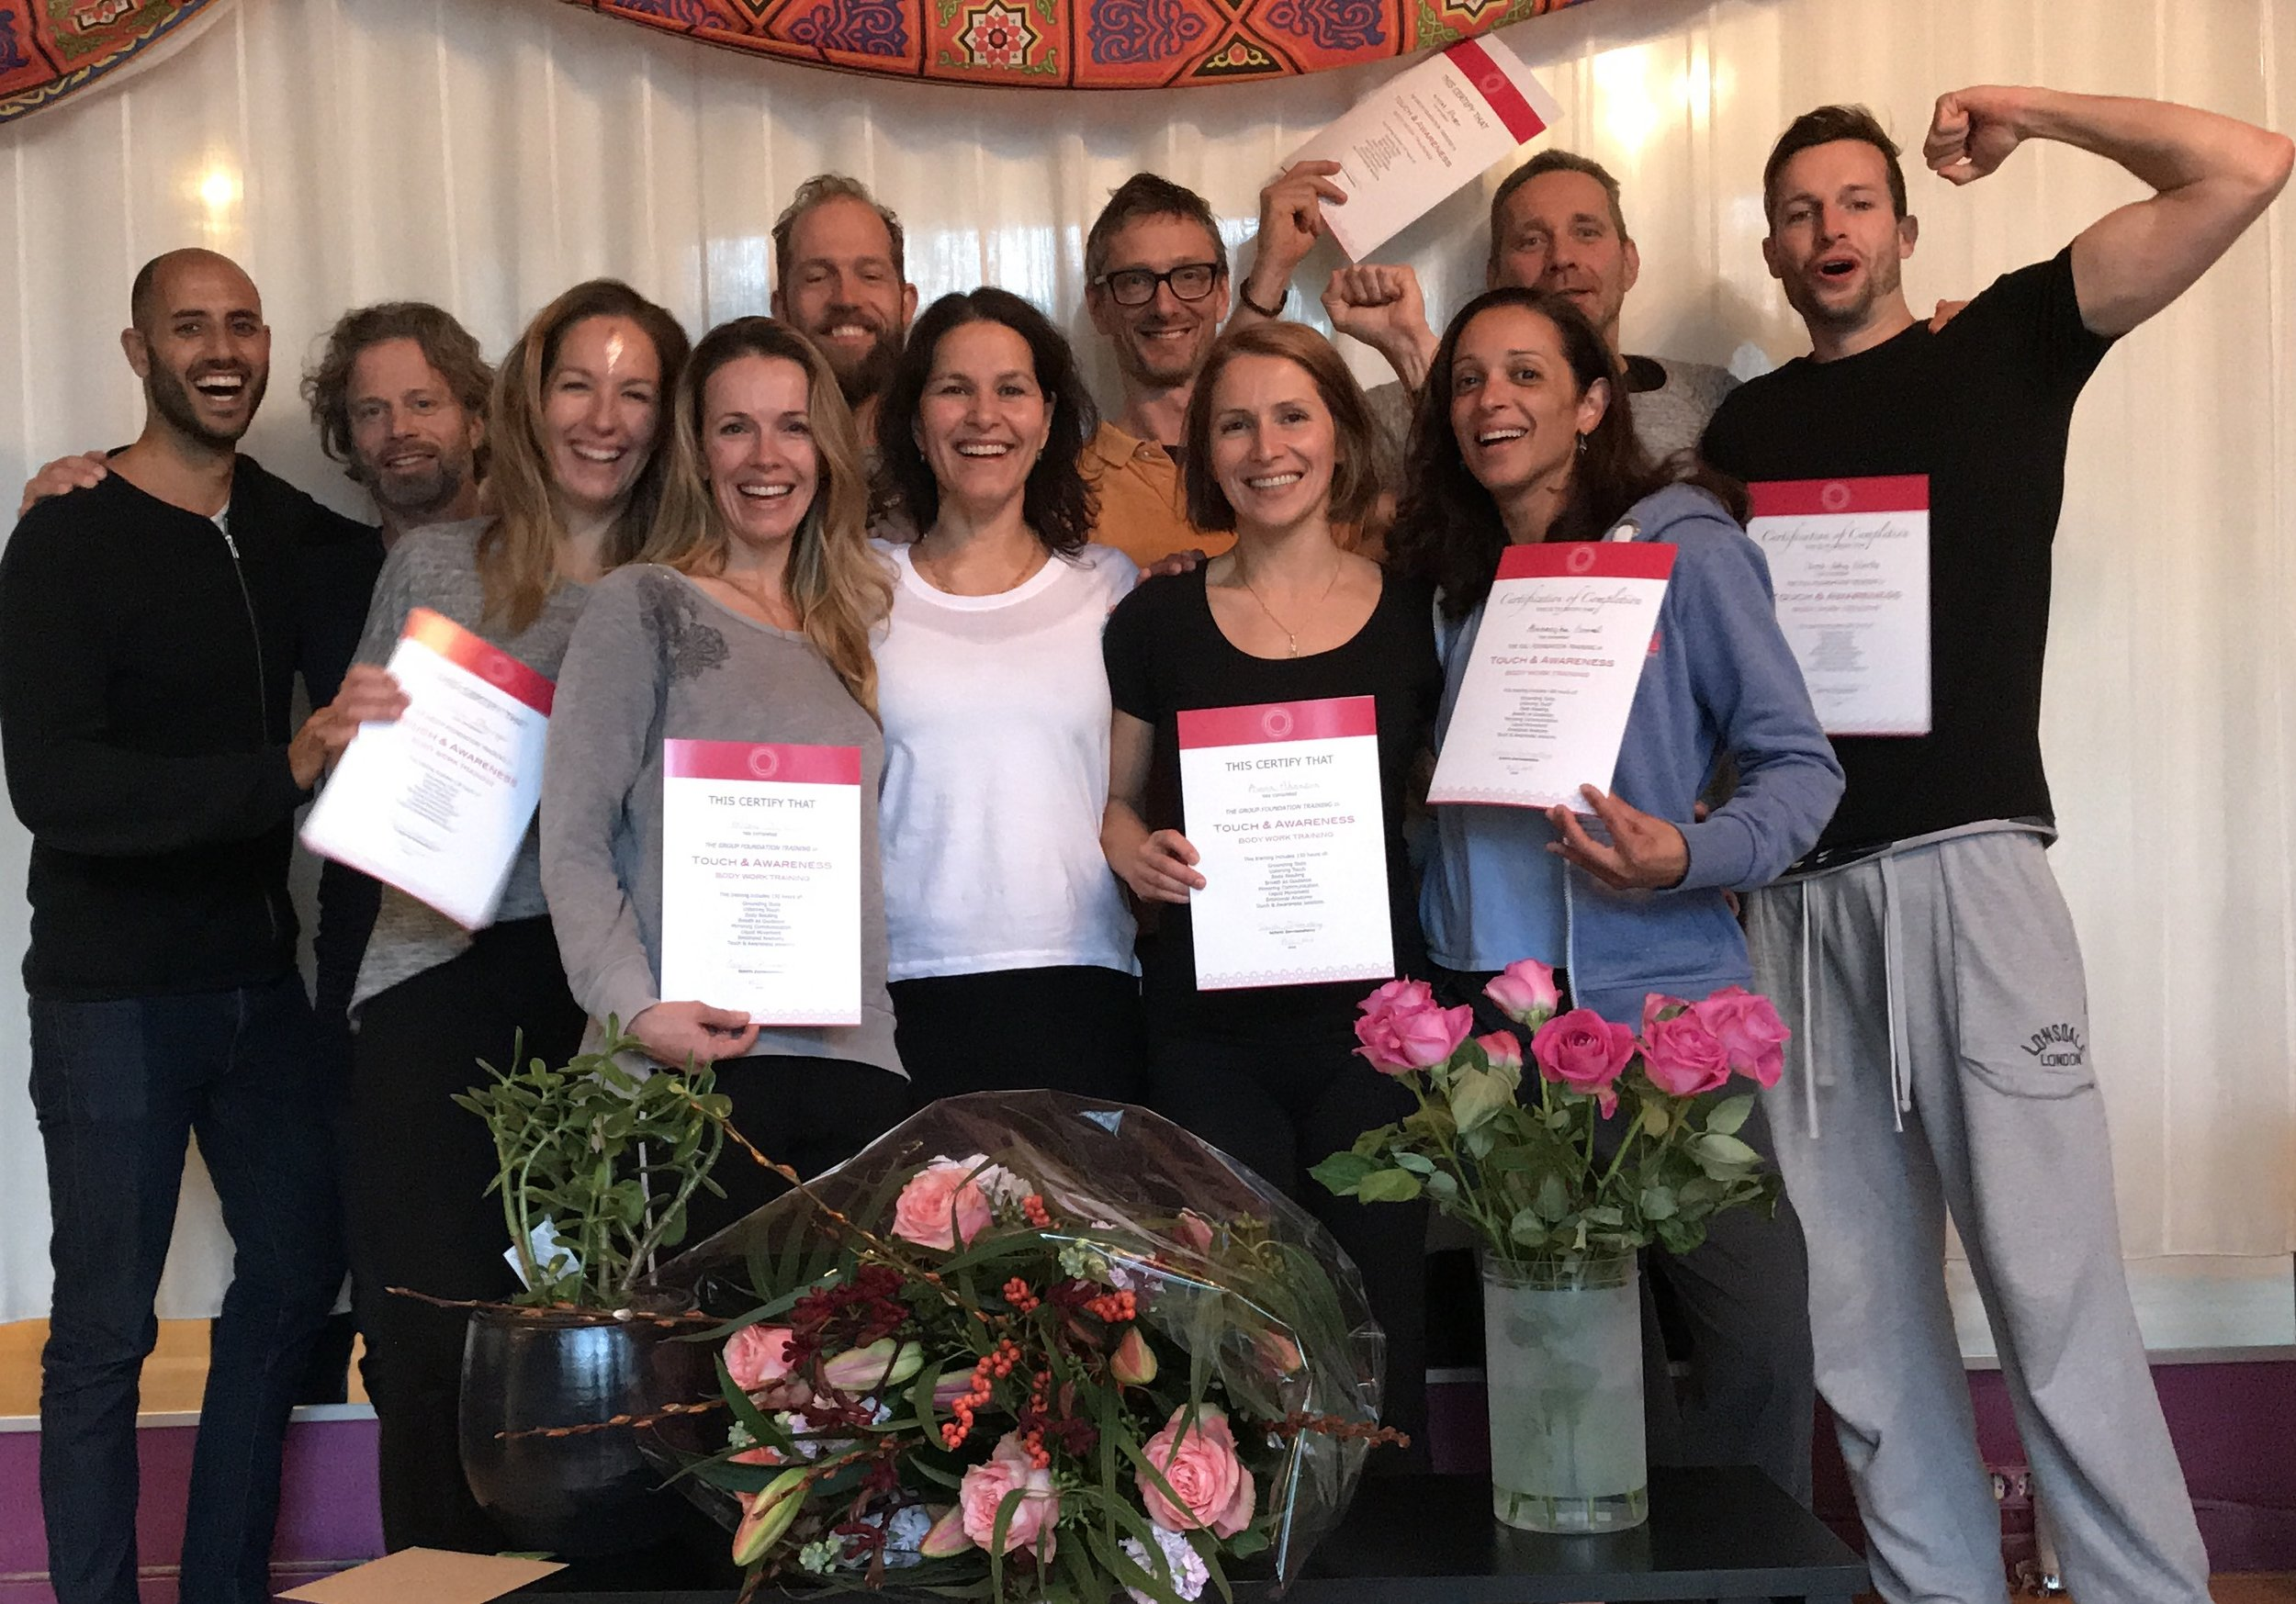 Students' last day of the group training in 2018. Celebration!   About the founder and facilitator : Schirin started her training in Rosen method bodywork in 1996. She has been a practitioner since 2001 and a supervisor. Also educated in Thaivedic massage and as a tantric bodyworker. Her passion is to get in Touch with what is happening in the present moment. Amsterdam 2018 saw the first edition of her Touch & Awareness bodywork training; bringing together a blend of all her deep experience.